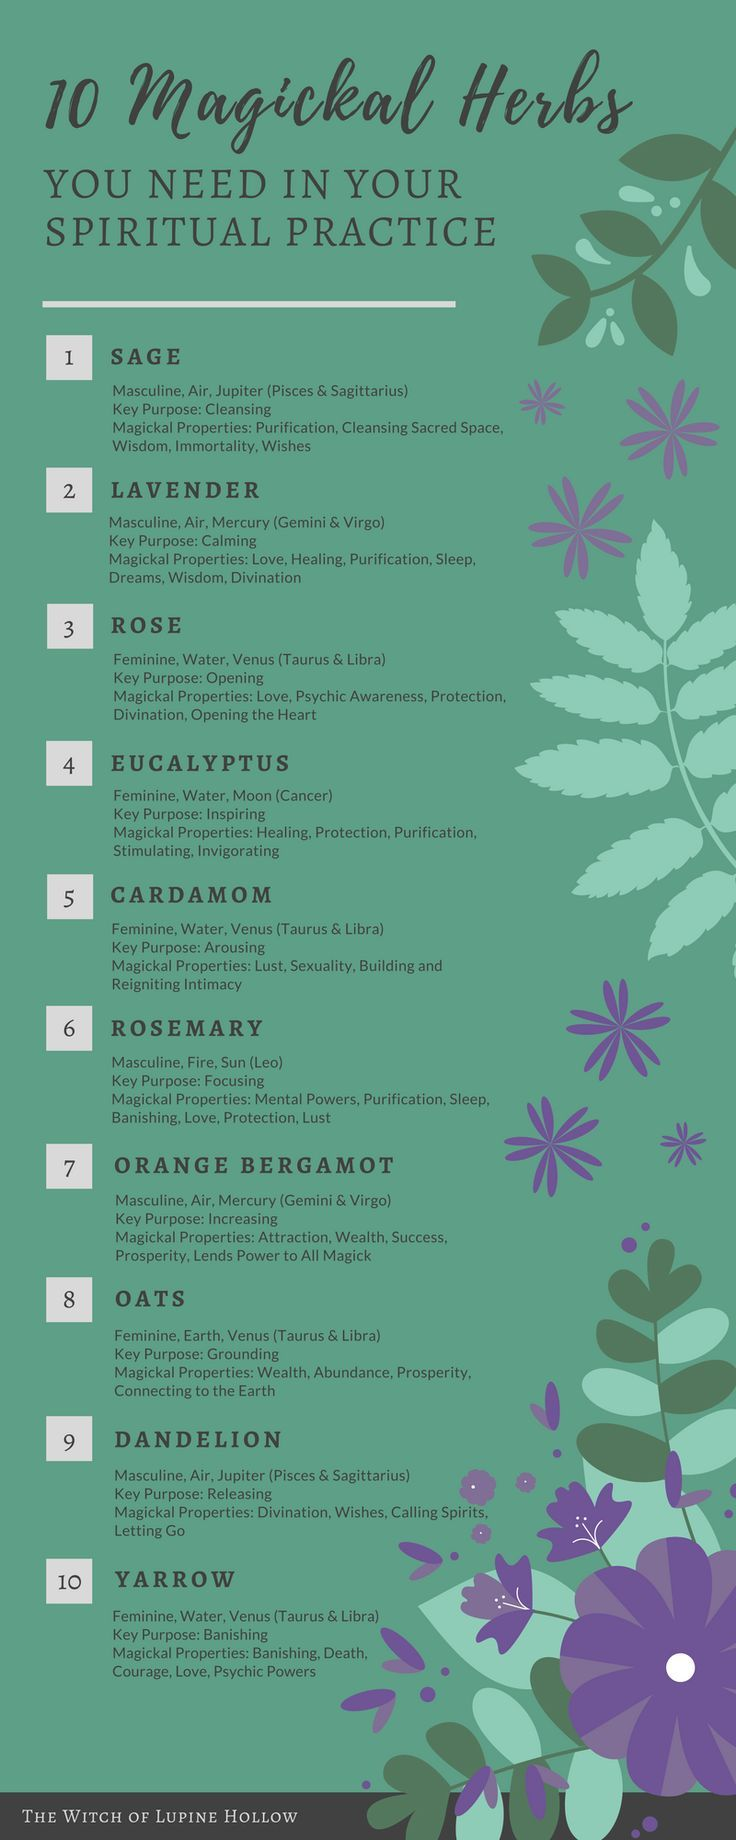 10 Magickal Herbs You Need In Your Practice - essential herbs and flowers for witchcraft witchoflupinehollow.com/